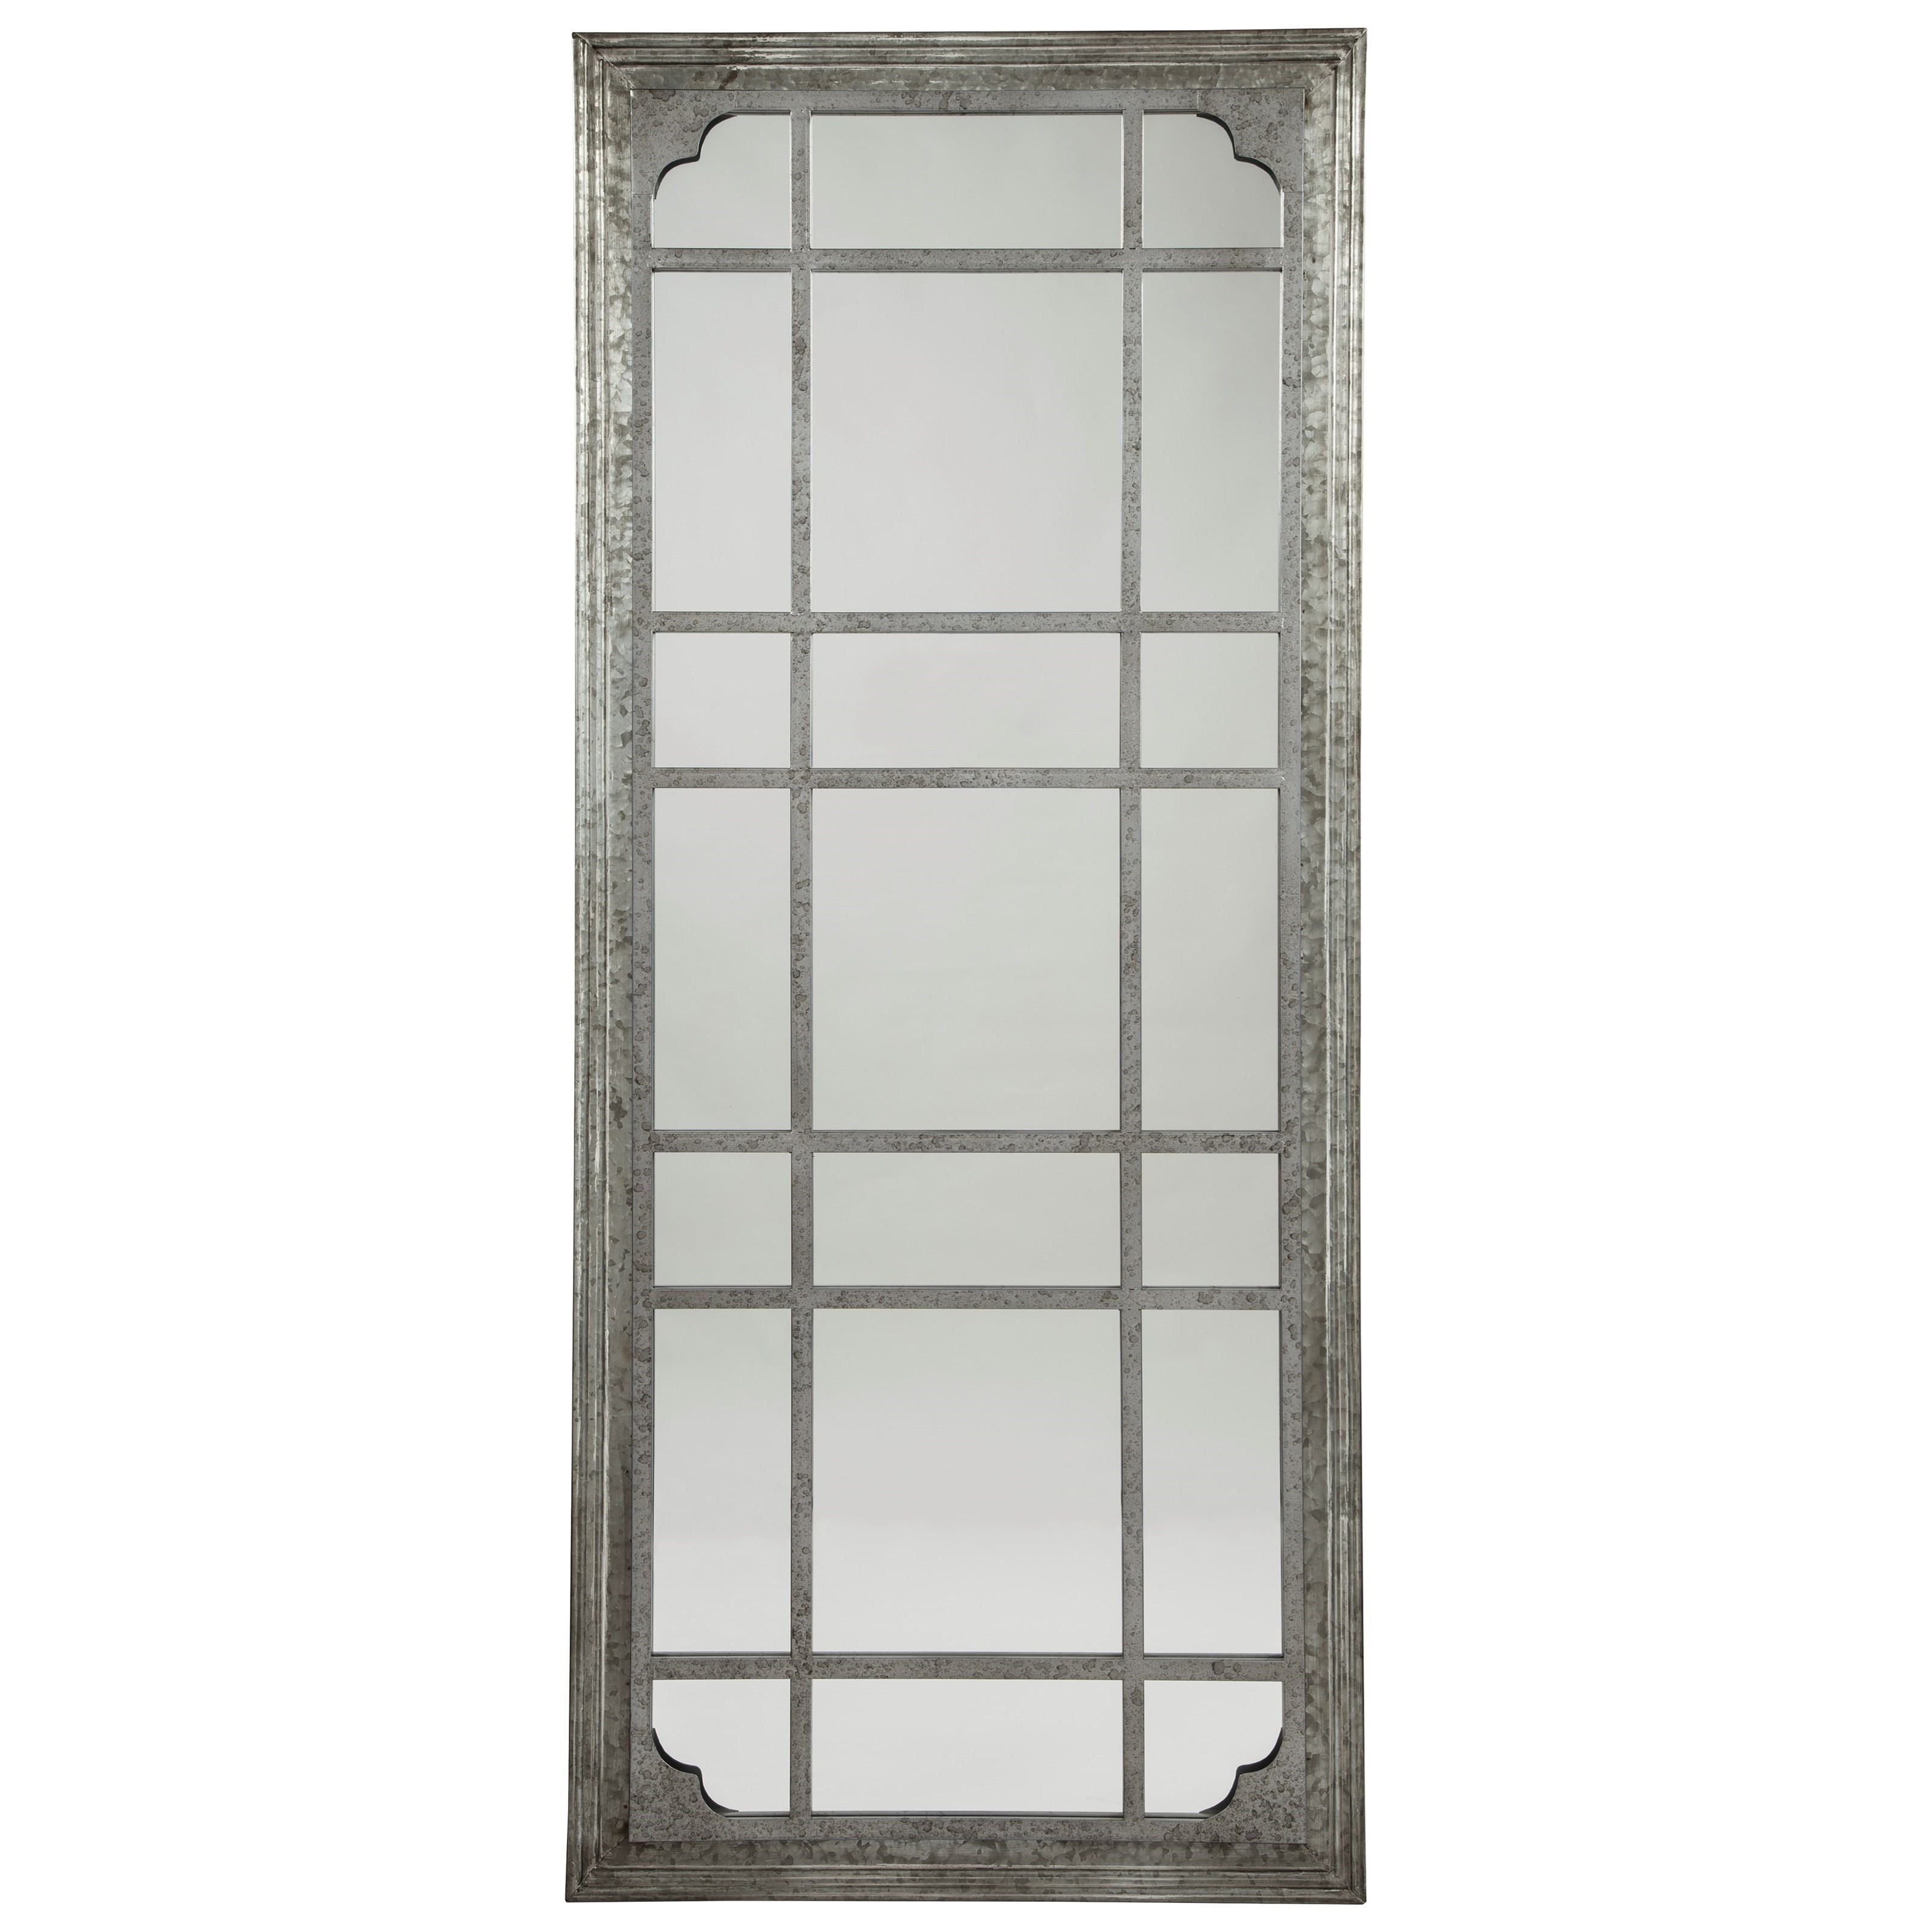 Accent Mirrors Remy Antique Gray Accent Mirror by Signature Design by Ashley at Beds N Stuff